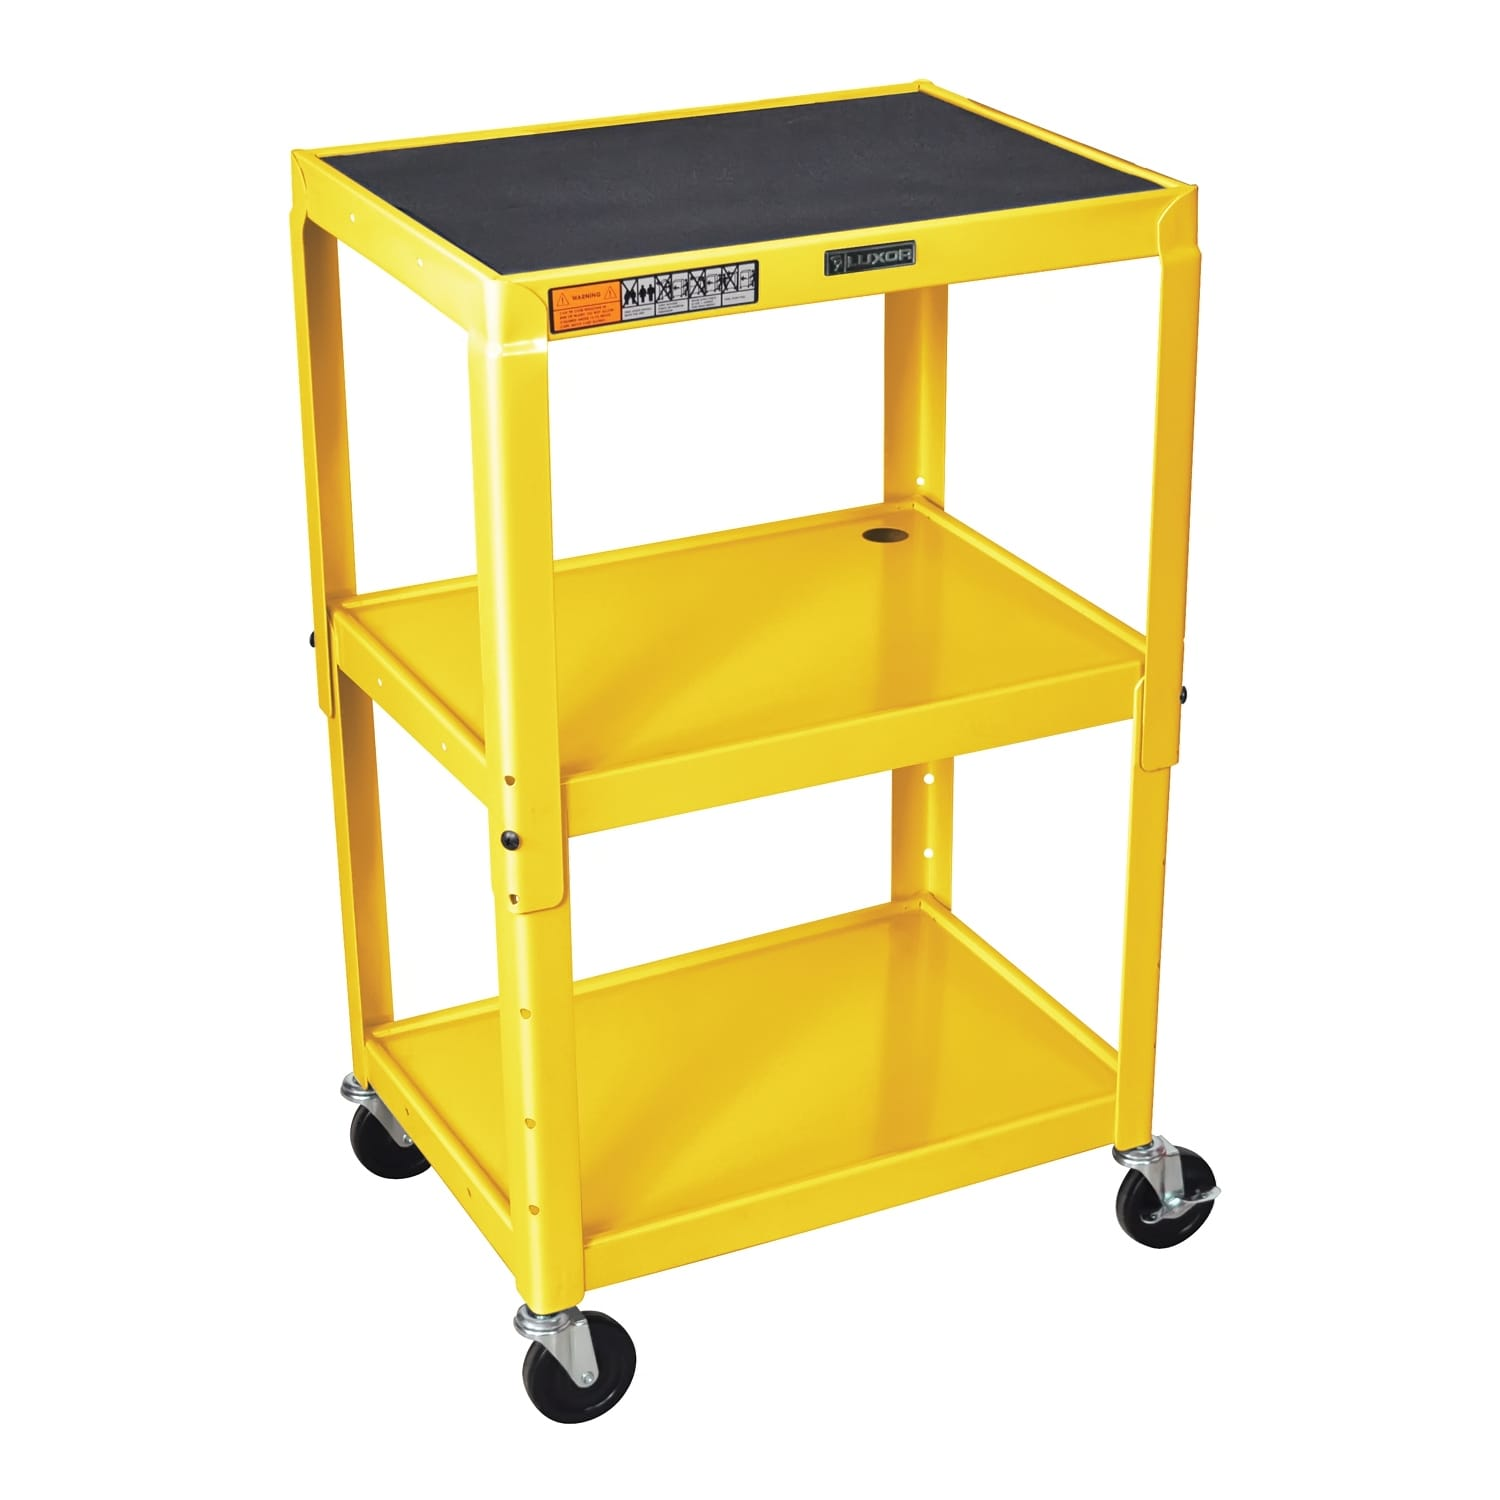 Offex OF-AVJ42-YW - Adjustable Height Steel A/V Cart - Three Shelves, Yellow